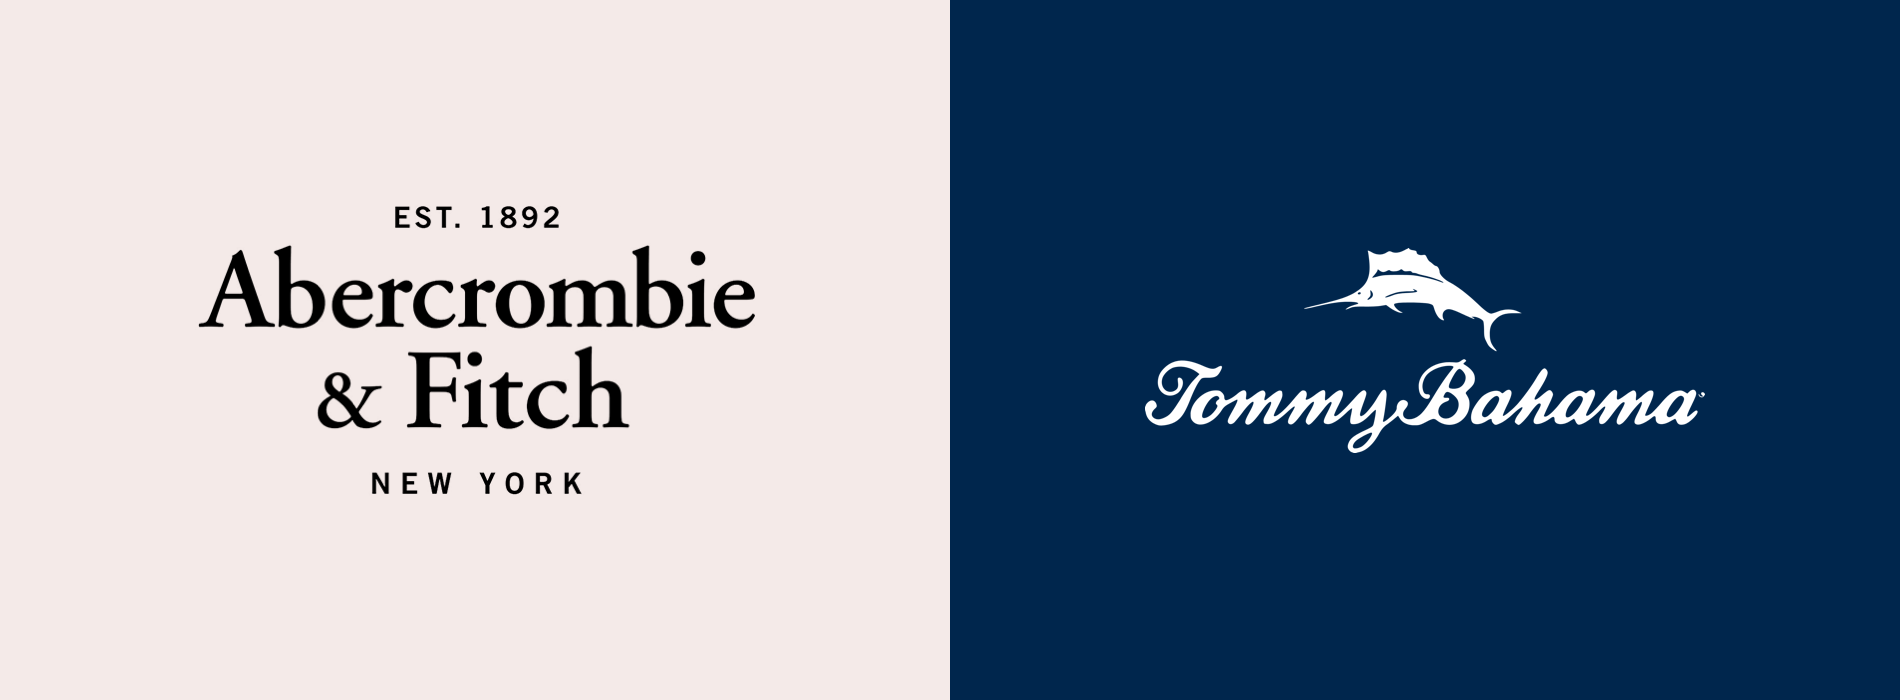 Abercrombie Fitch Vs Tommy Bahama A Ux Comparison Salecycle Blog